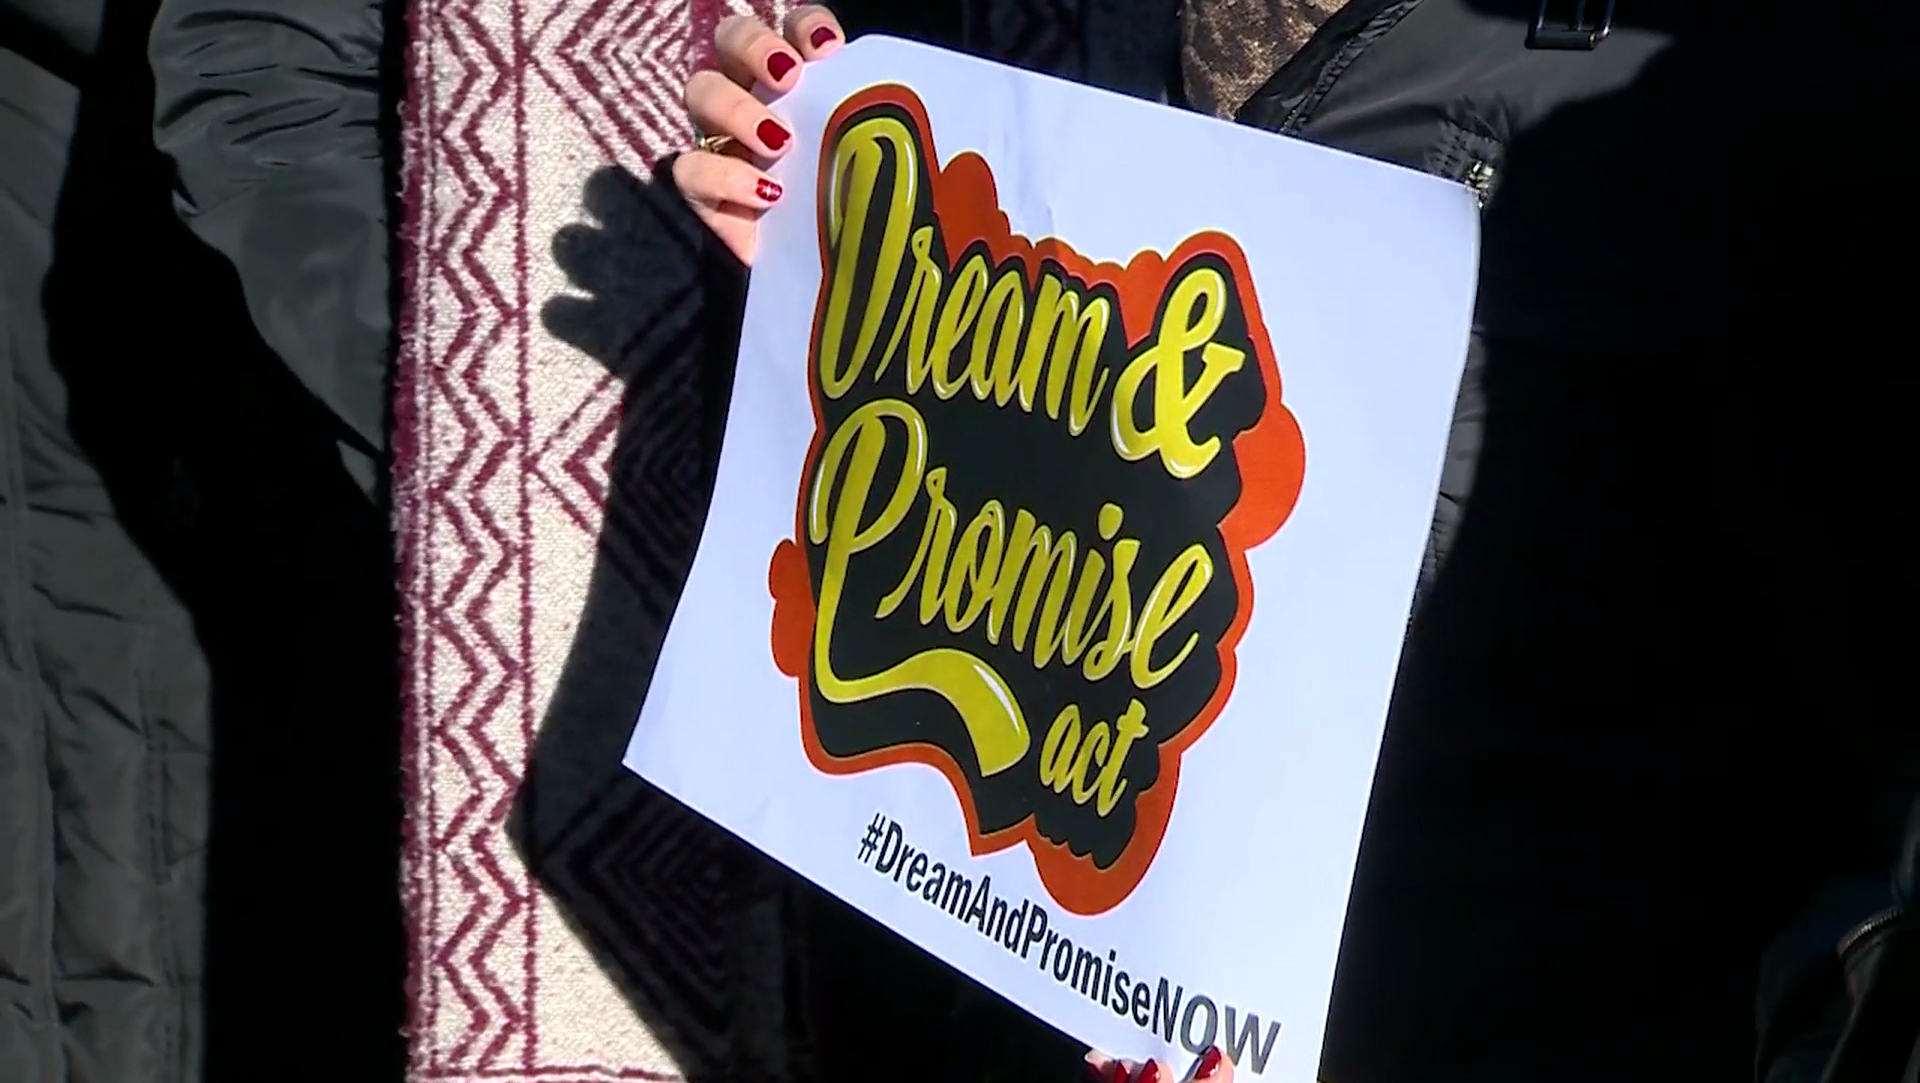 Politicians, 'Dreamers' hold Boston rally for Dream and Promise Act